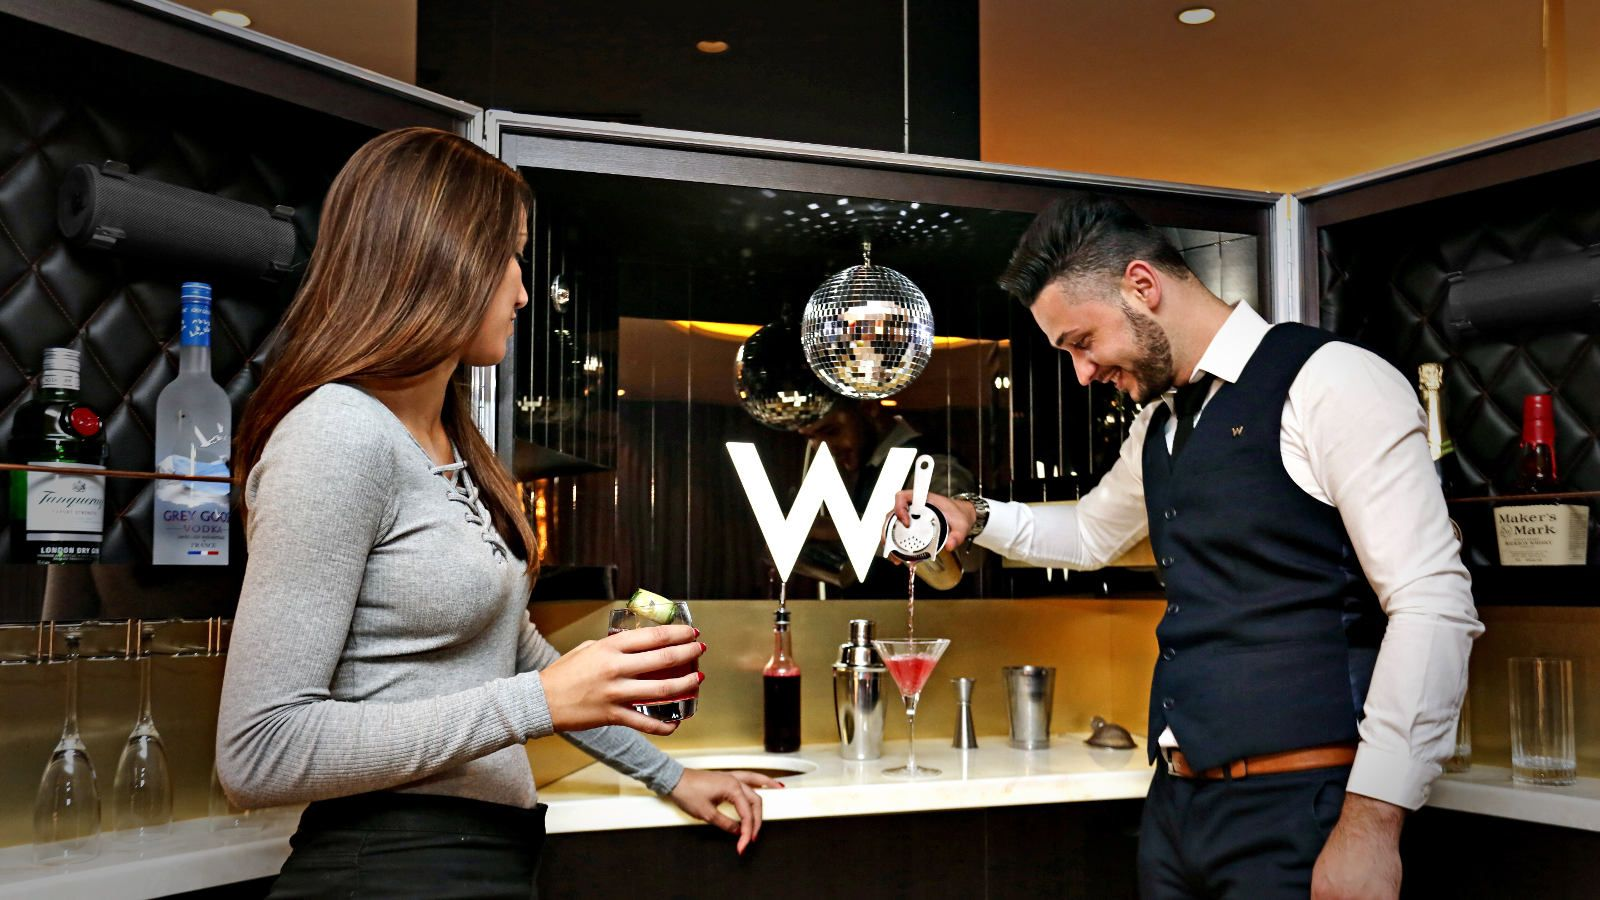 Luxury Suite Experience at W London